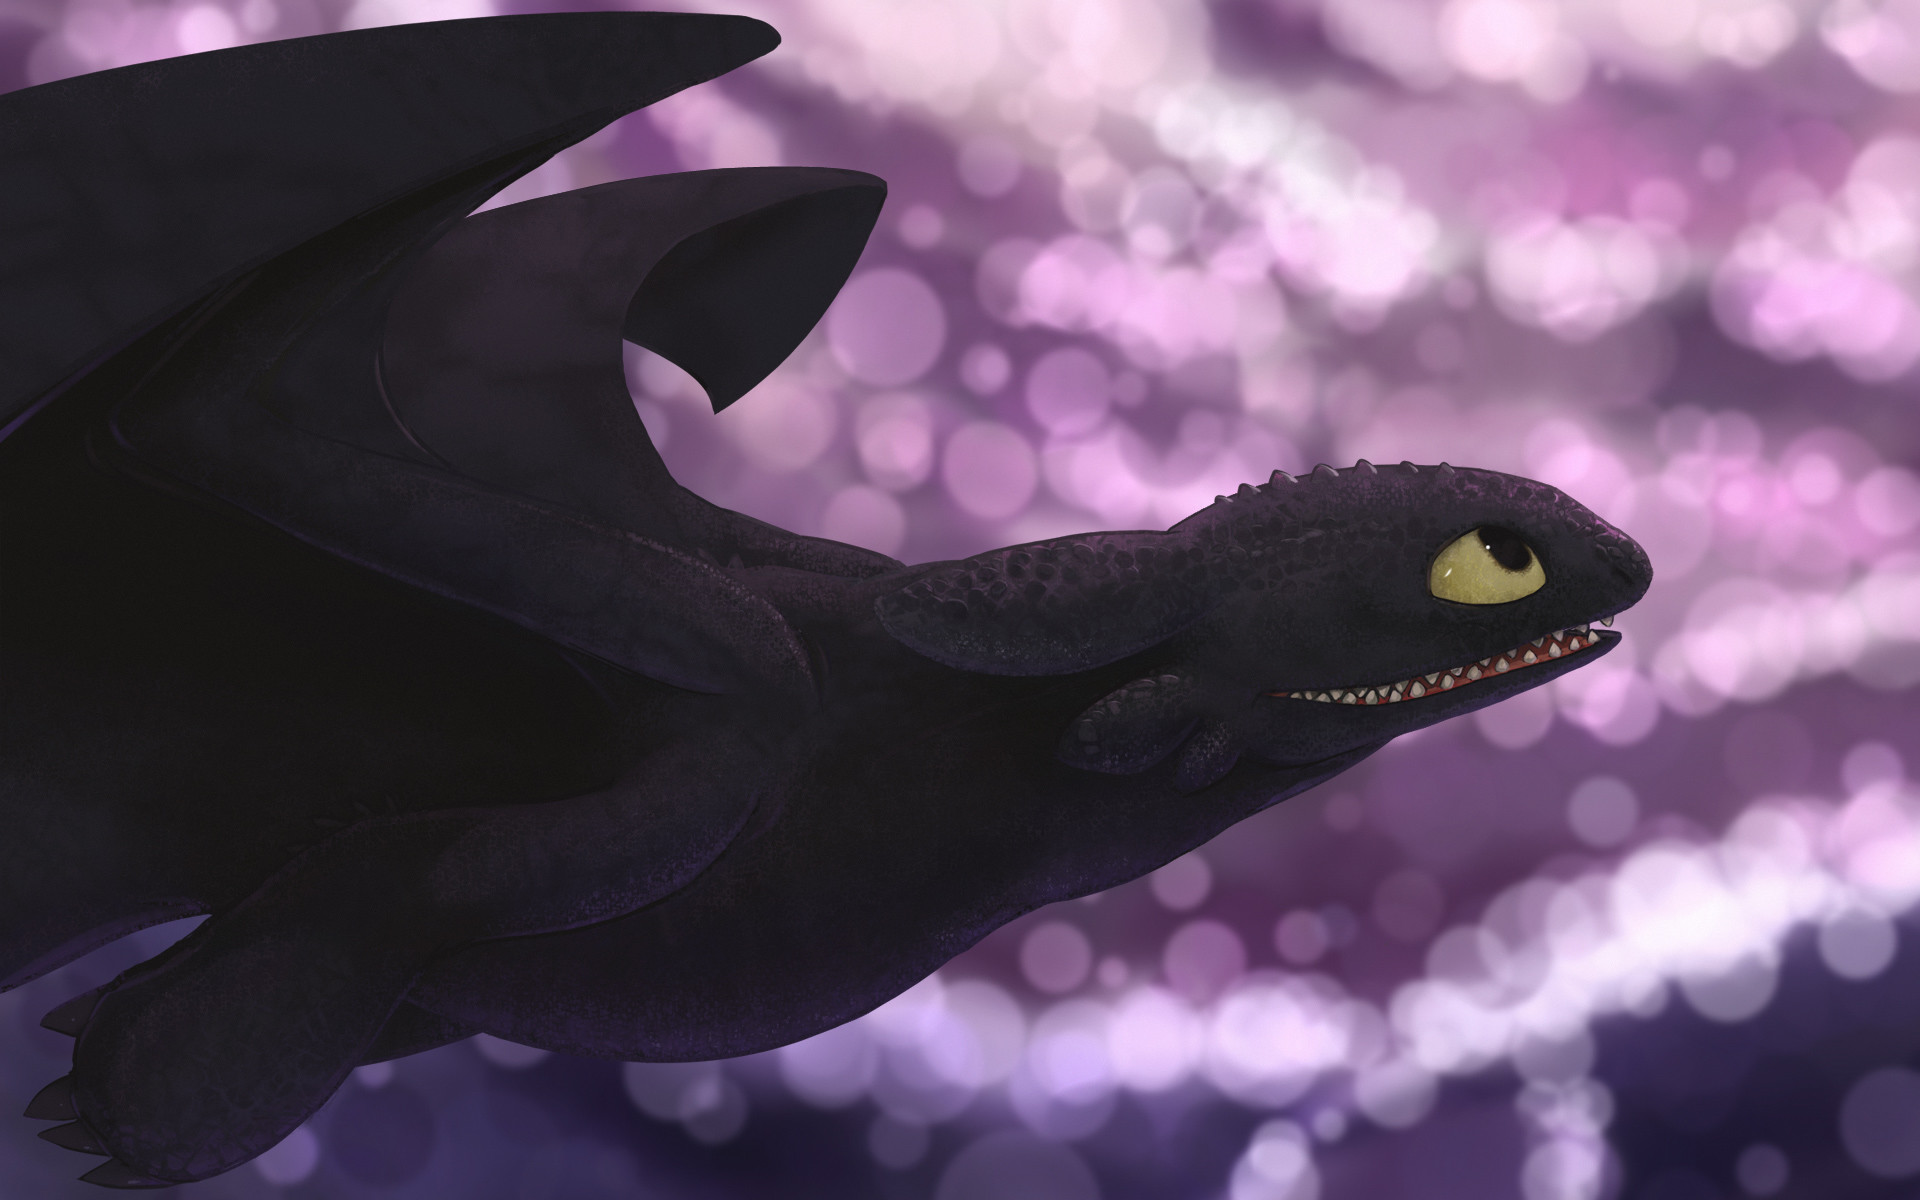 8 best images about dragon on Pinterest   Hiccup, Thoughts and .